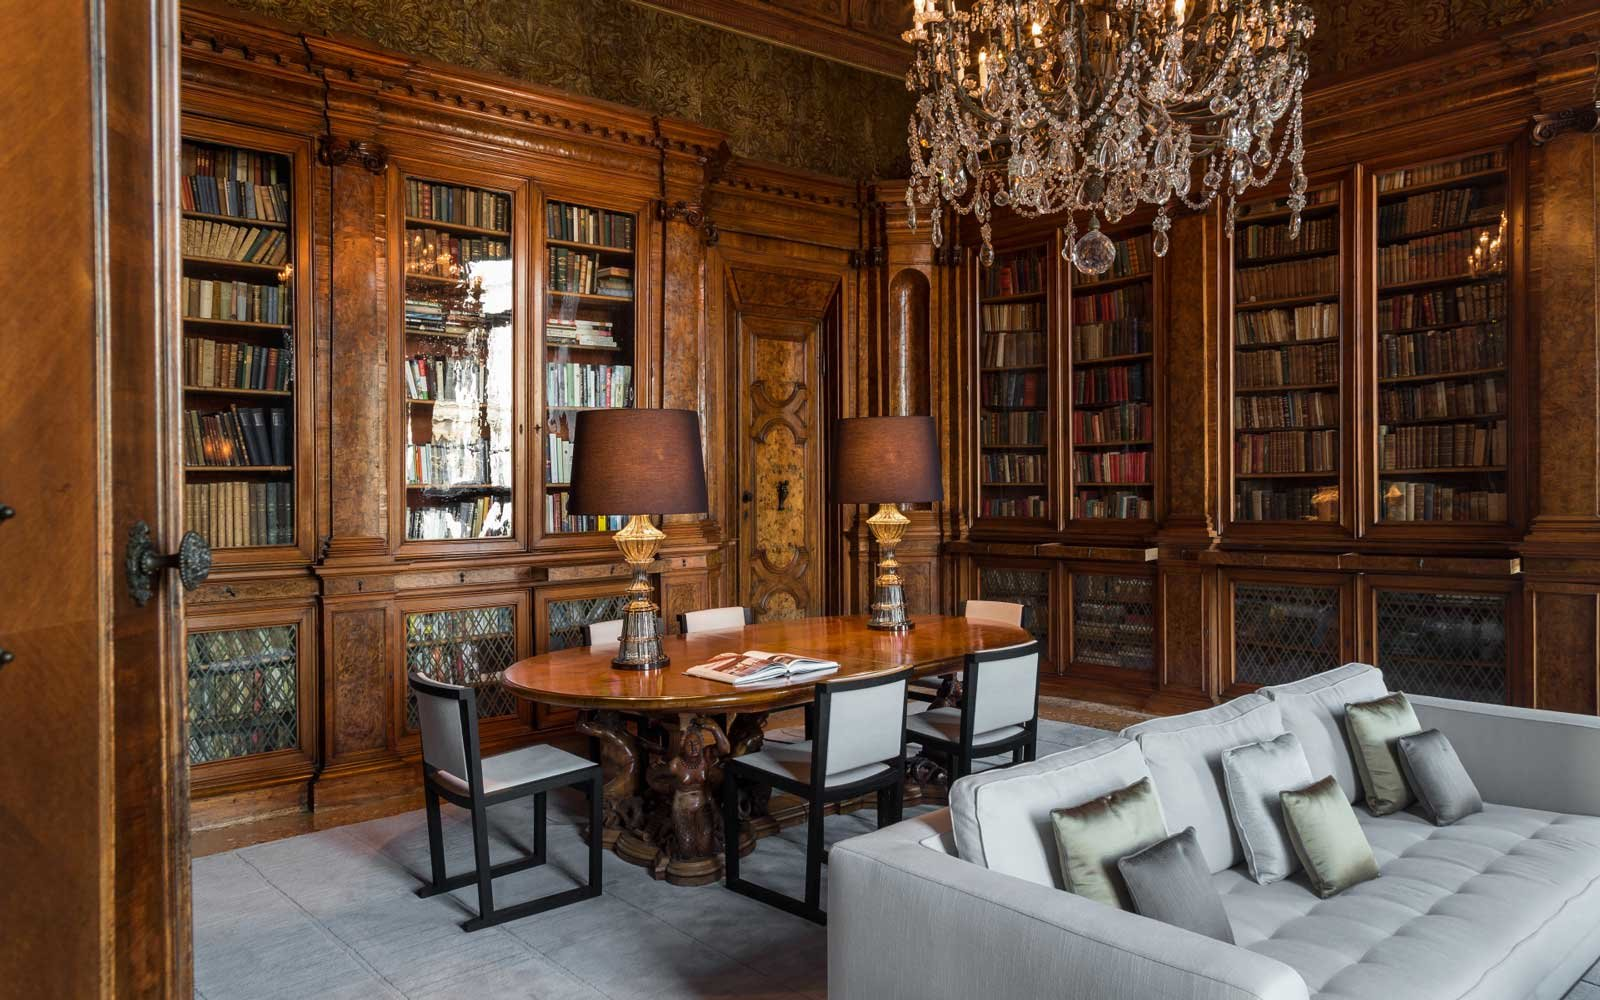 Library at the Aman Venice luxury hotel